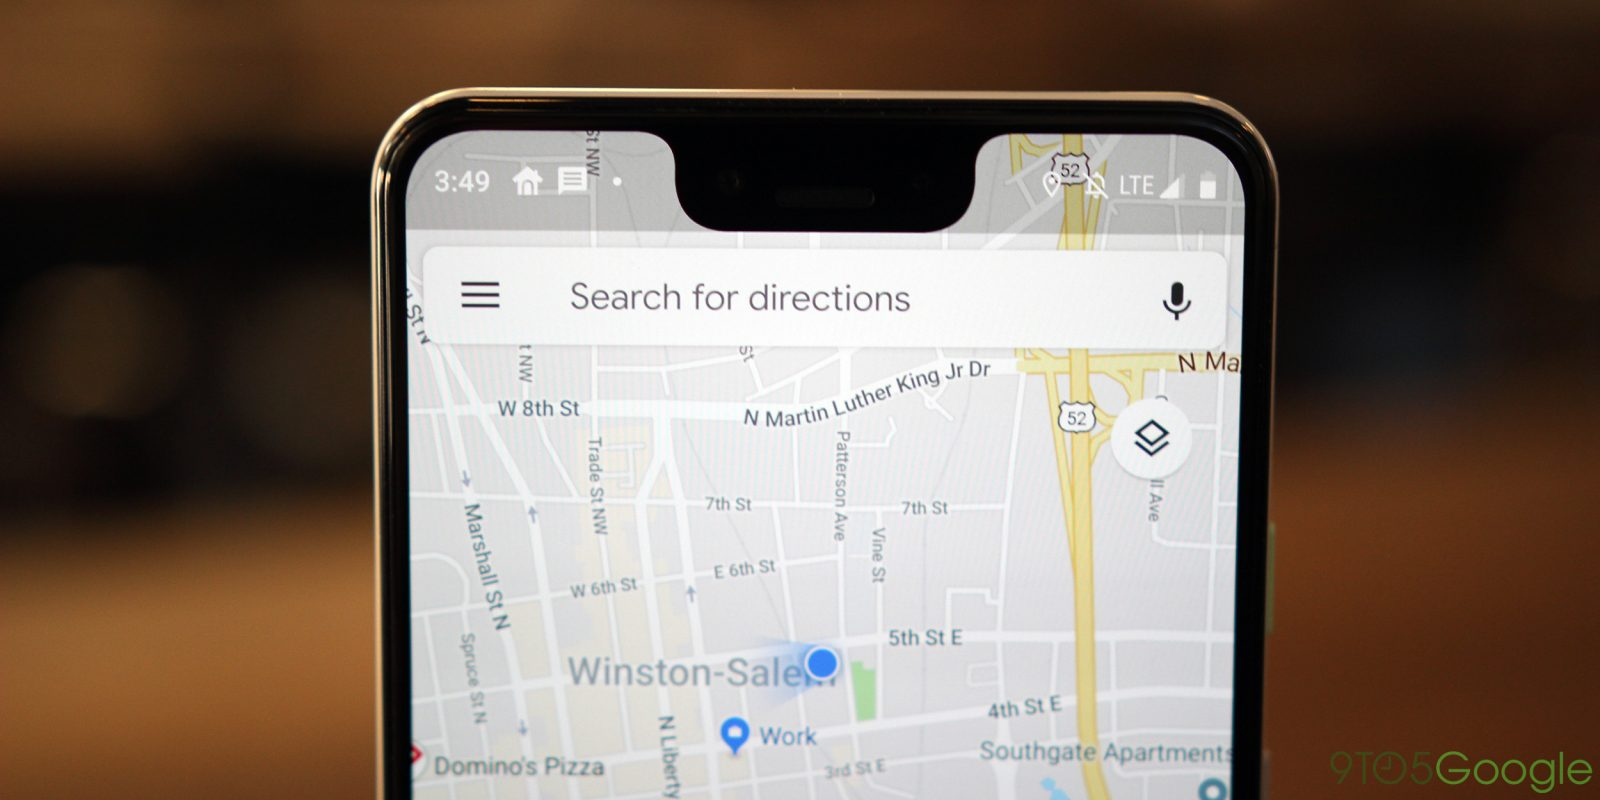 Google Maps for Android gets a Material Theme search interface, rolling out for some users